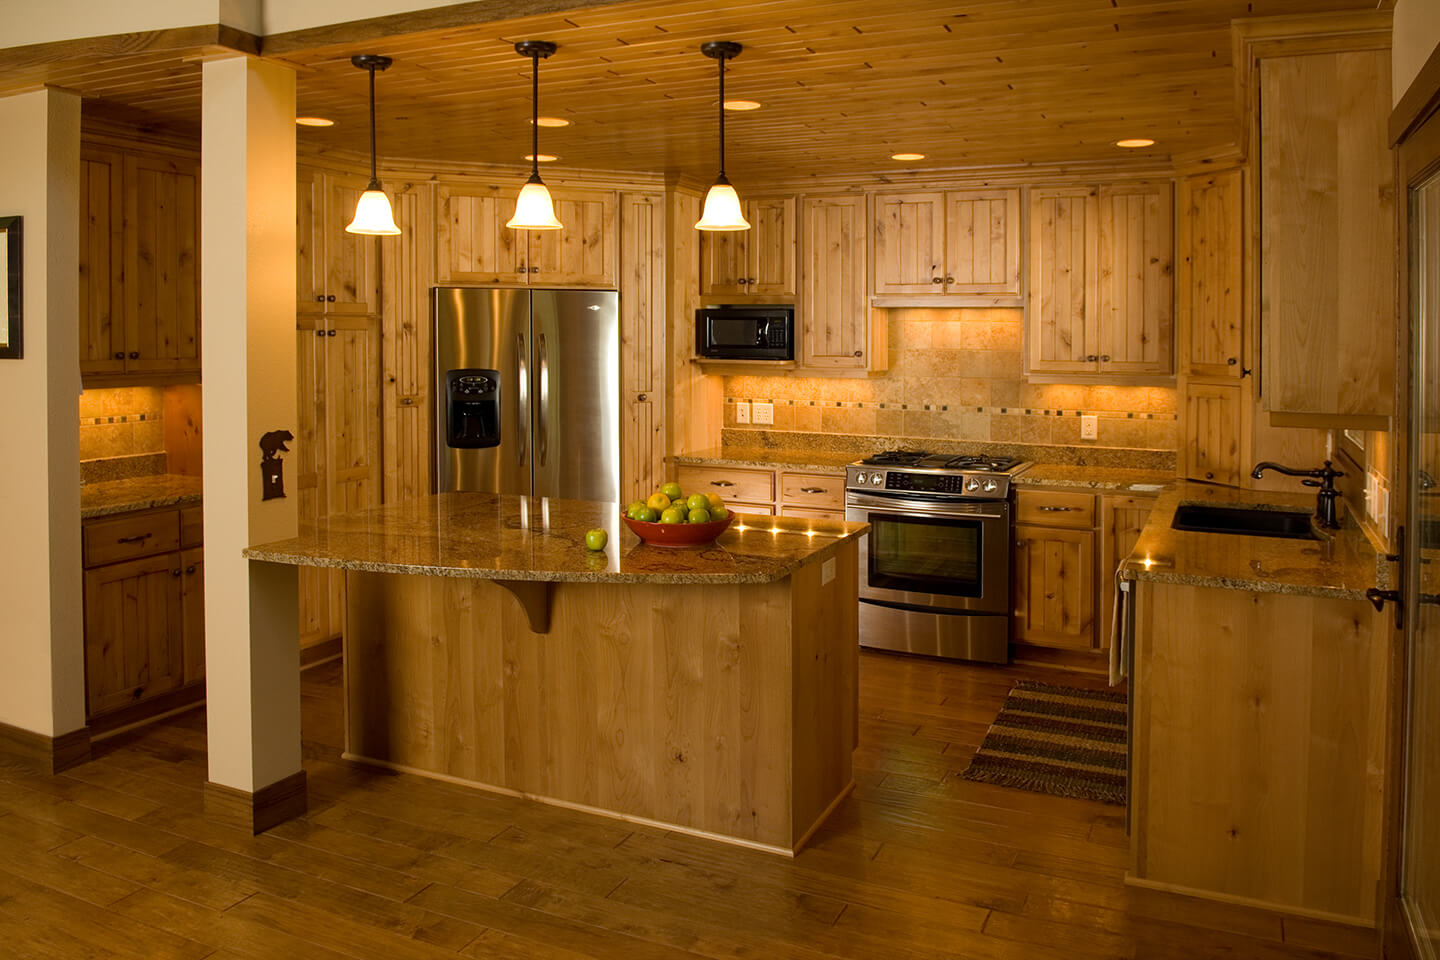 Kitchen with pine wood cabinetry